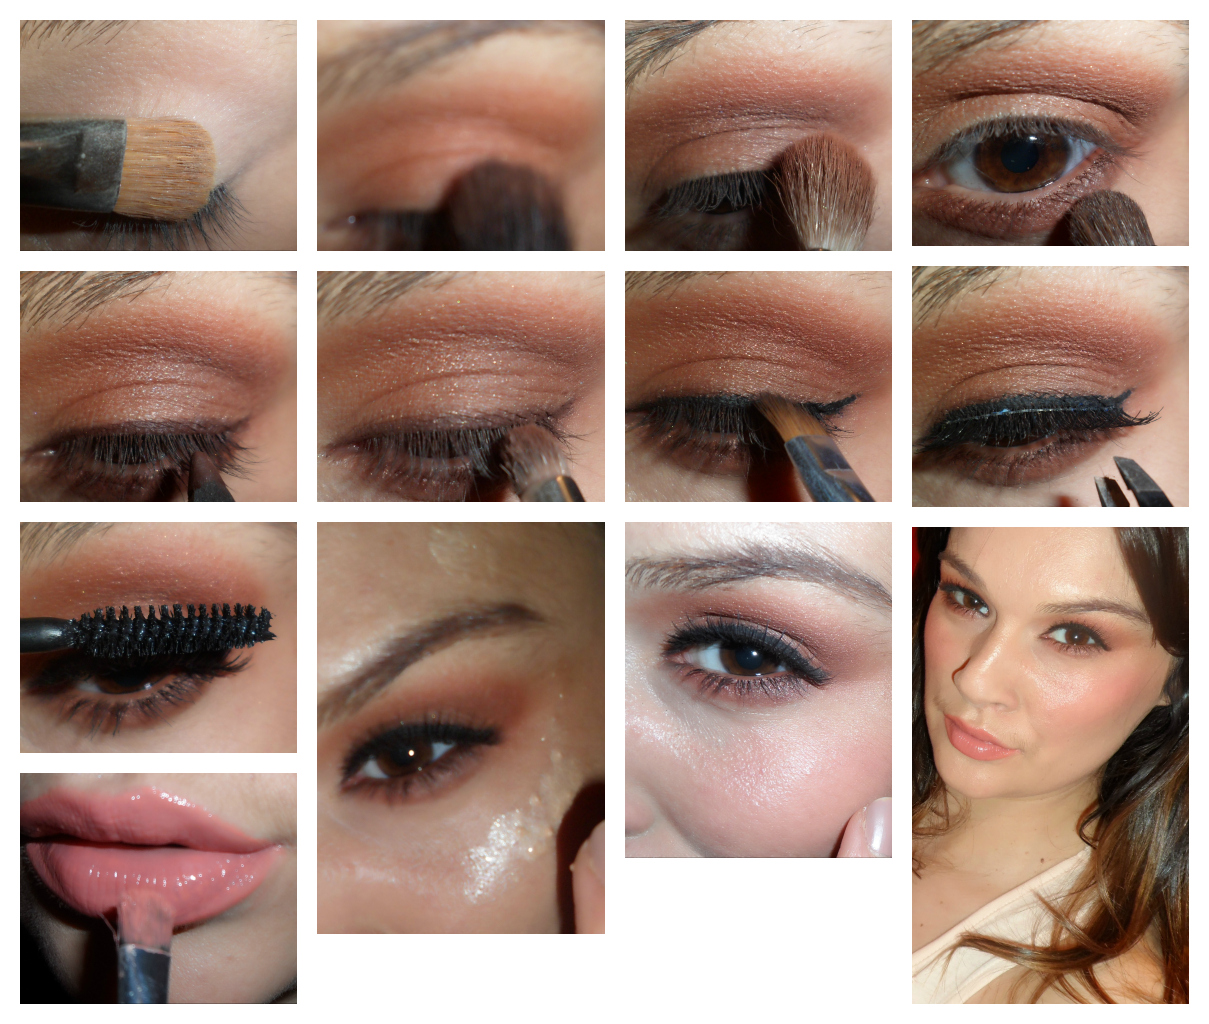 Steps To Apply Makeup 50 Images Procedural